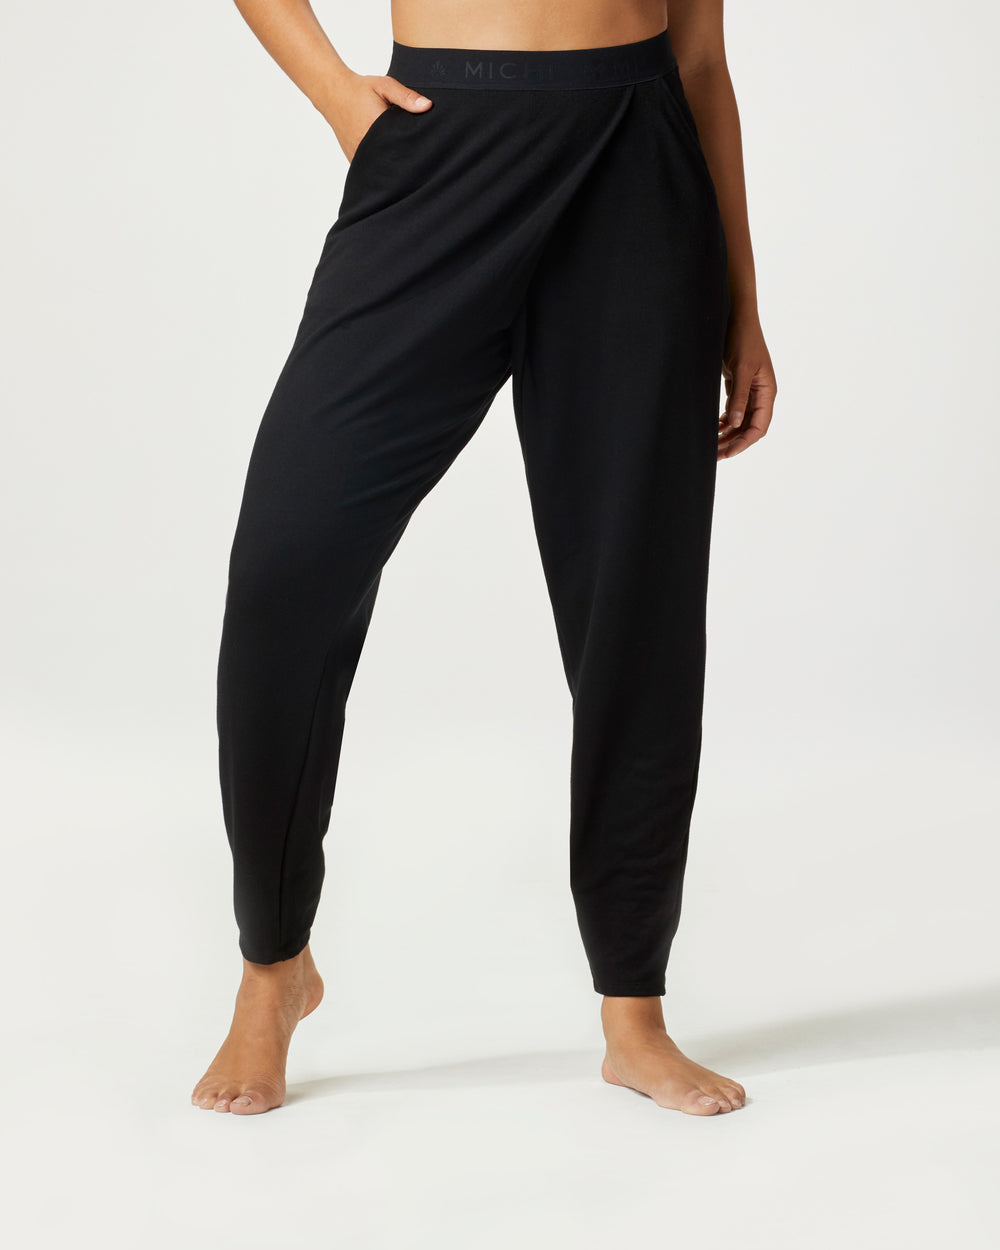 Era Lounge Pant - Black